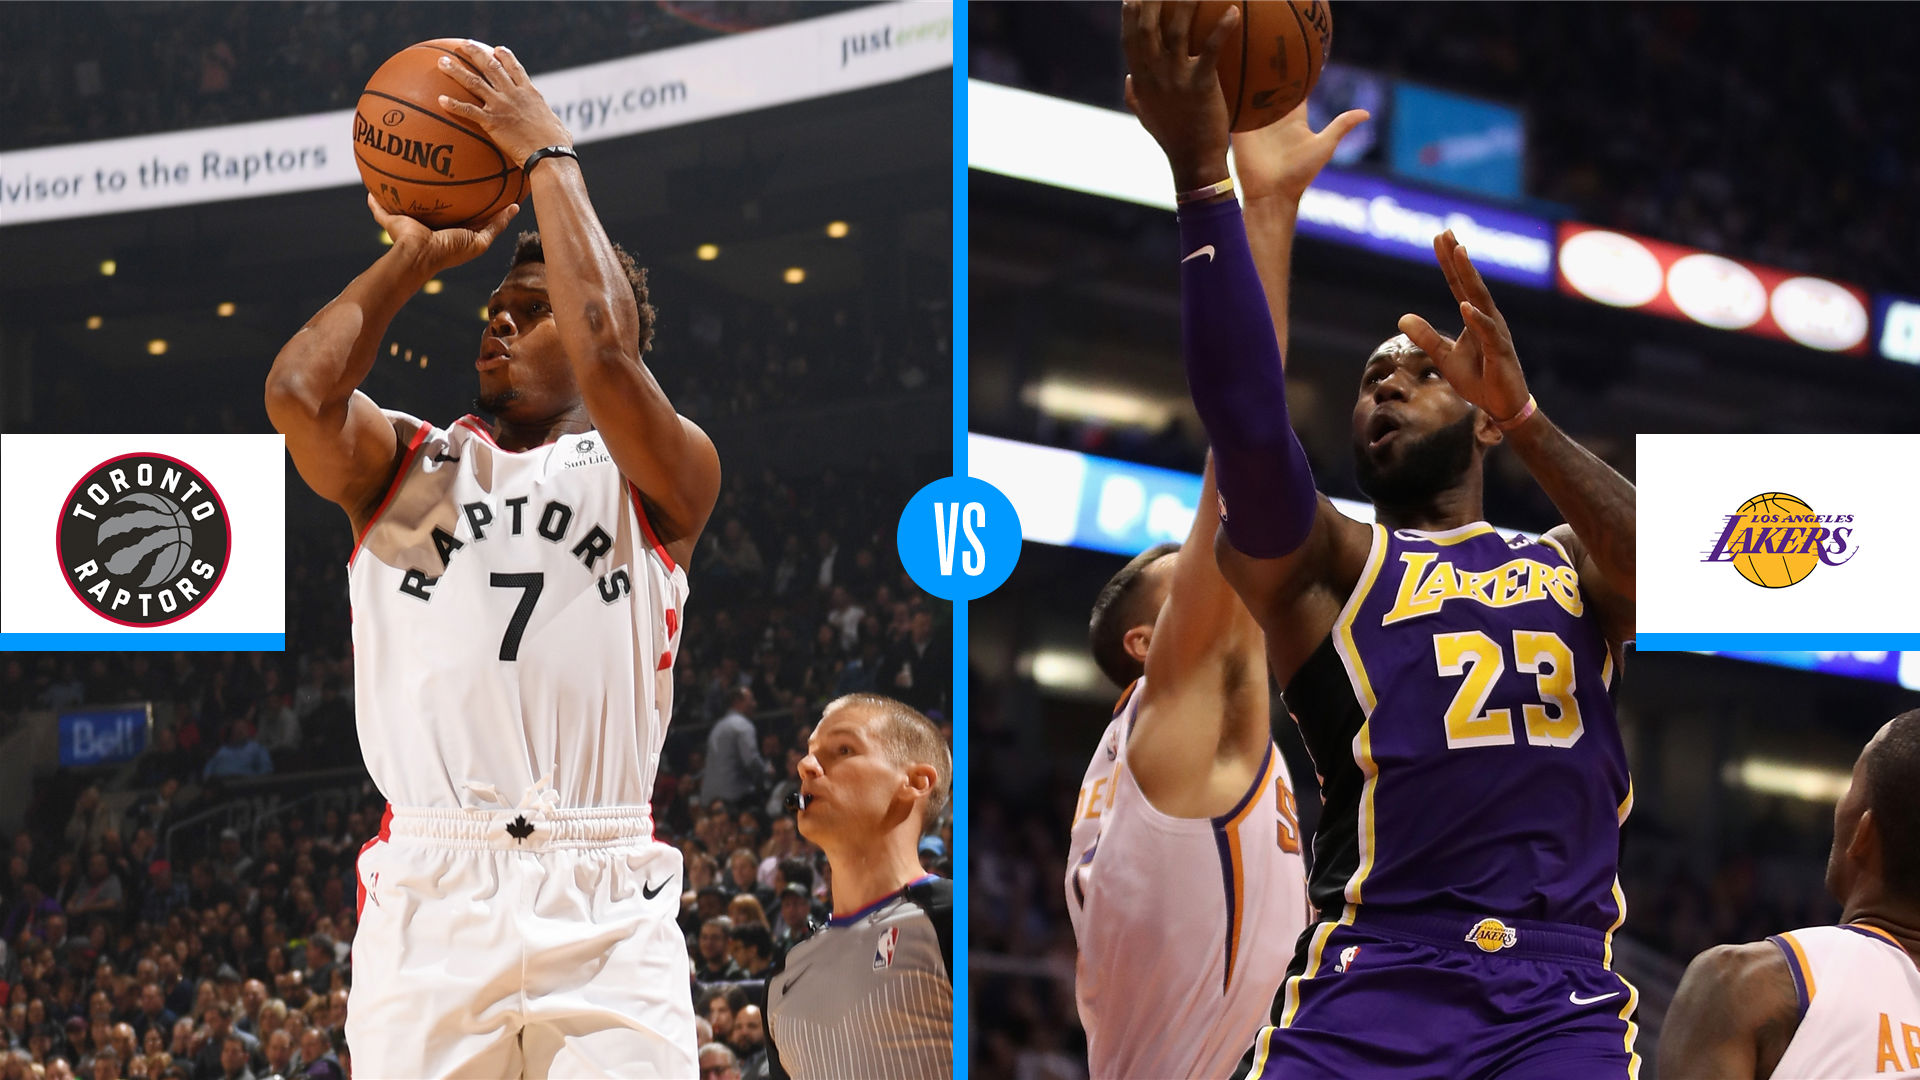 Lakers Vs Raptors Detail: Toronto Raptors Vs. Los Angeles Lakers: Game Preview, Live